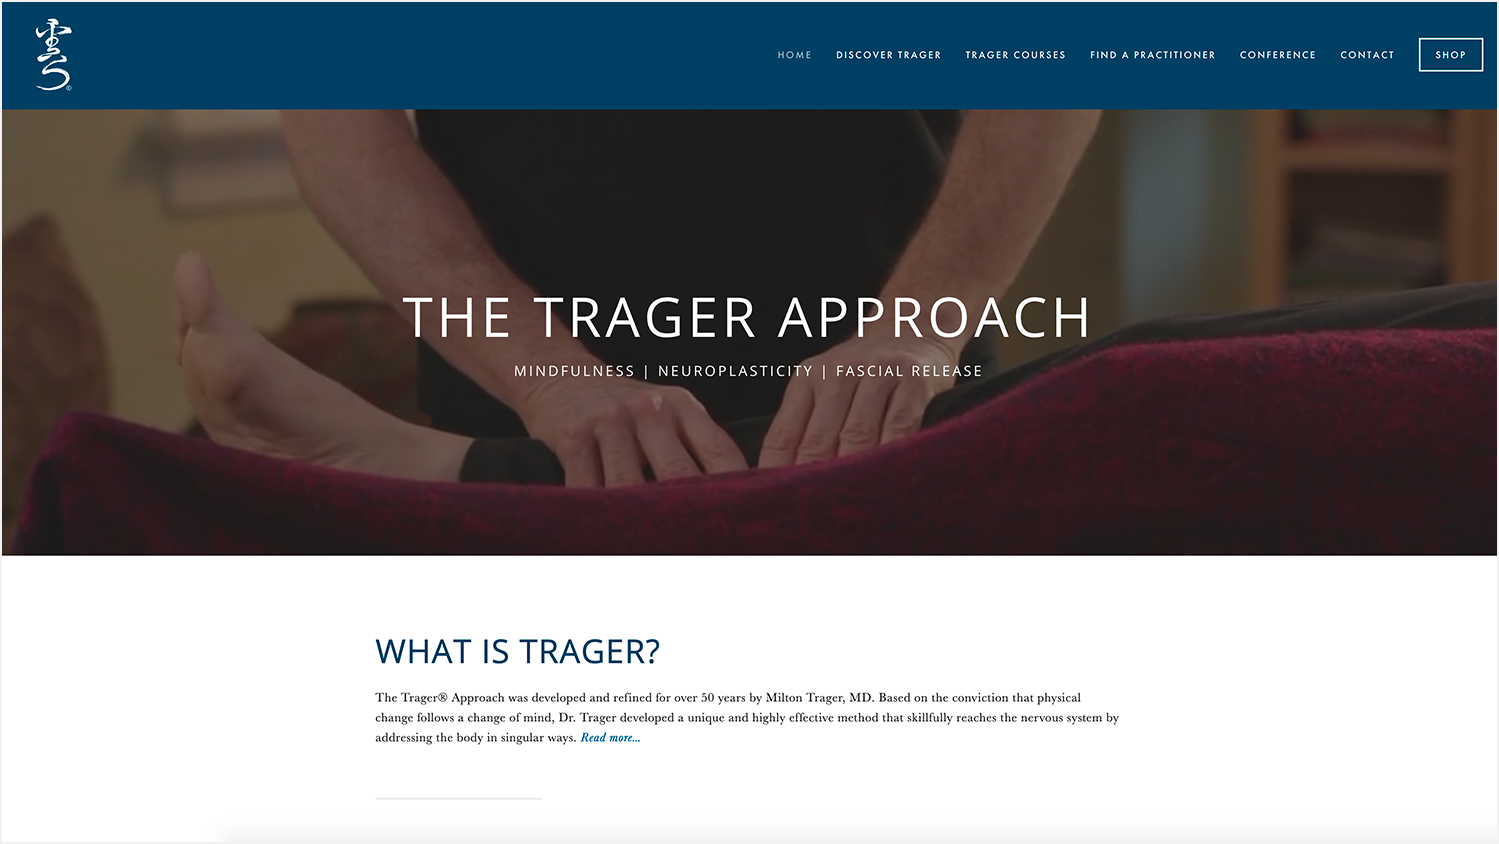 VISIT:  TRAGERAPPROACH.US